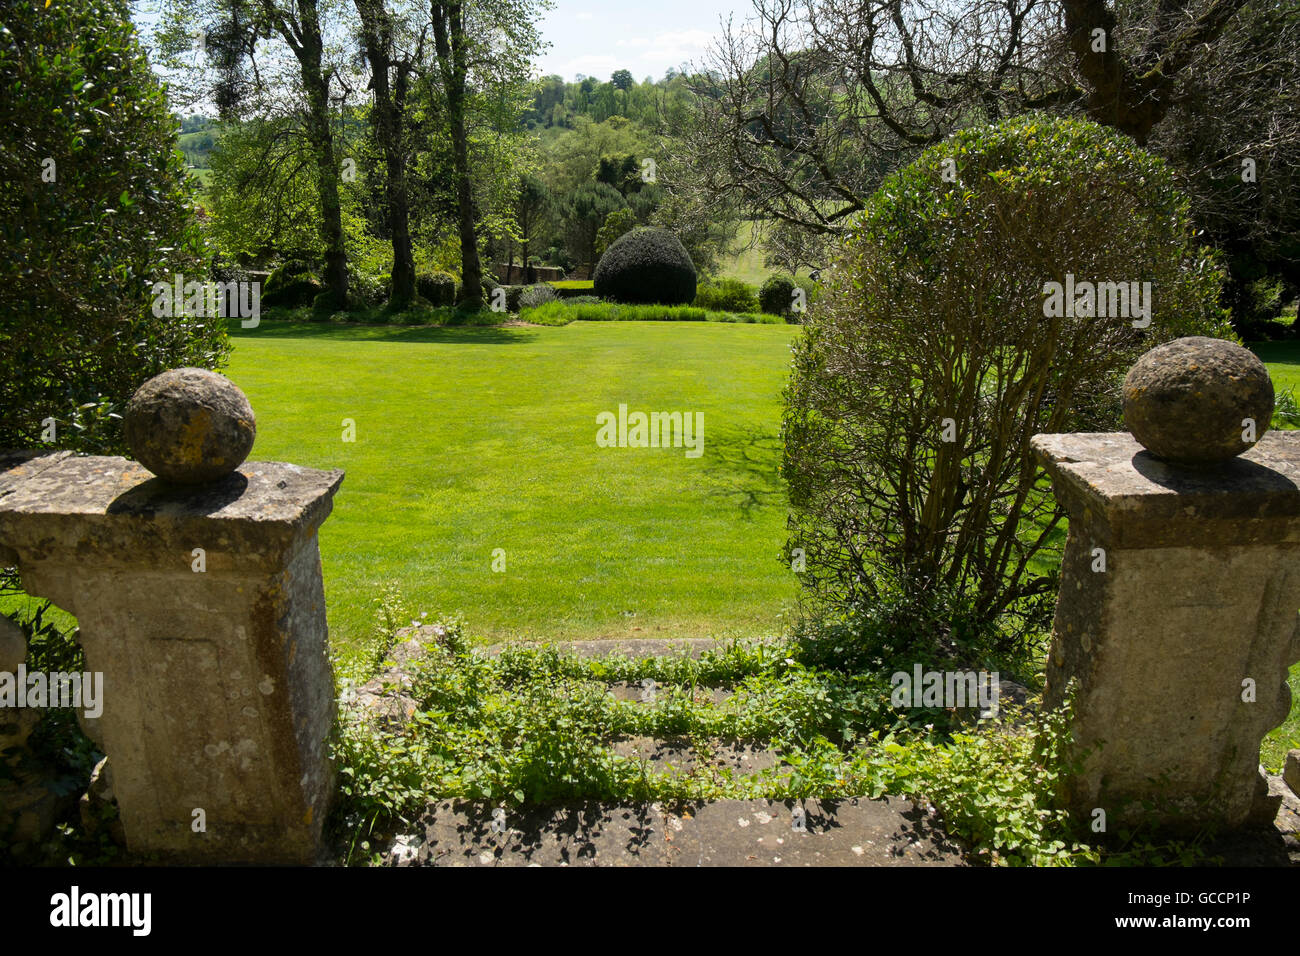 View across the grass lawn from the Garden House at The Peto Garden ...